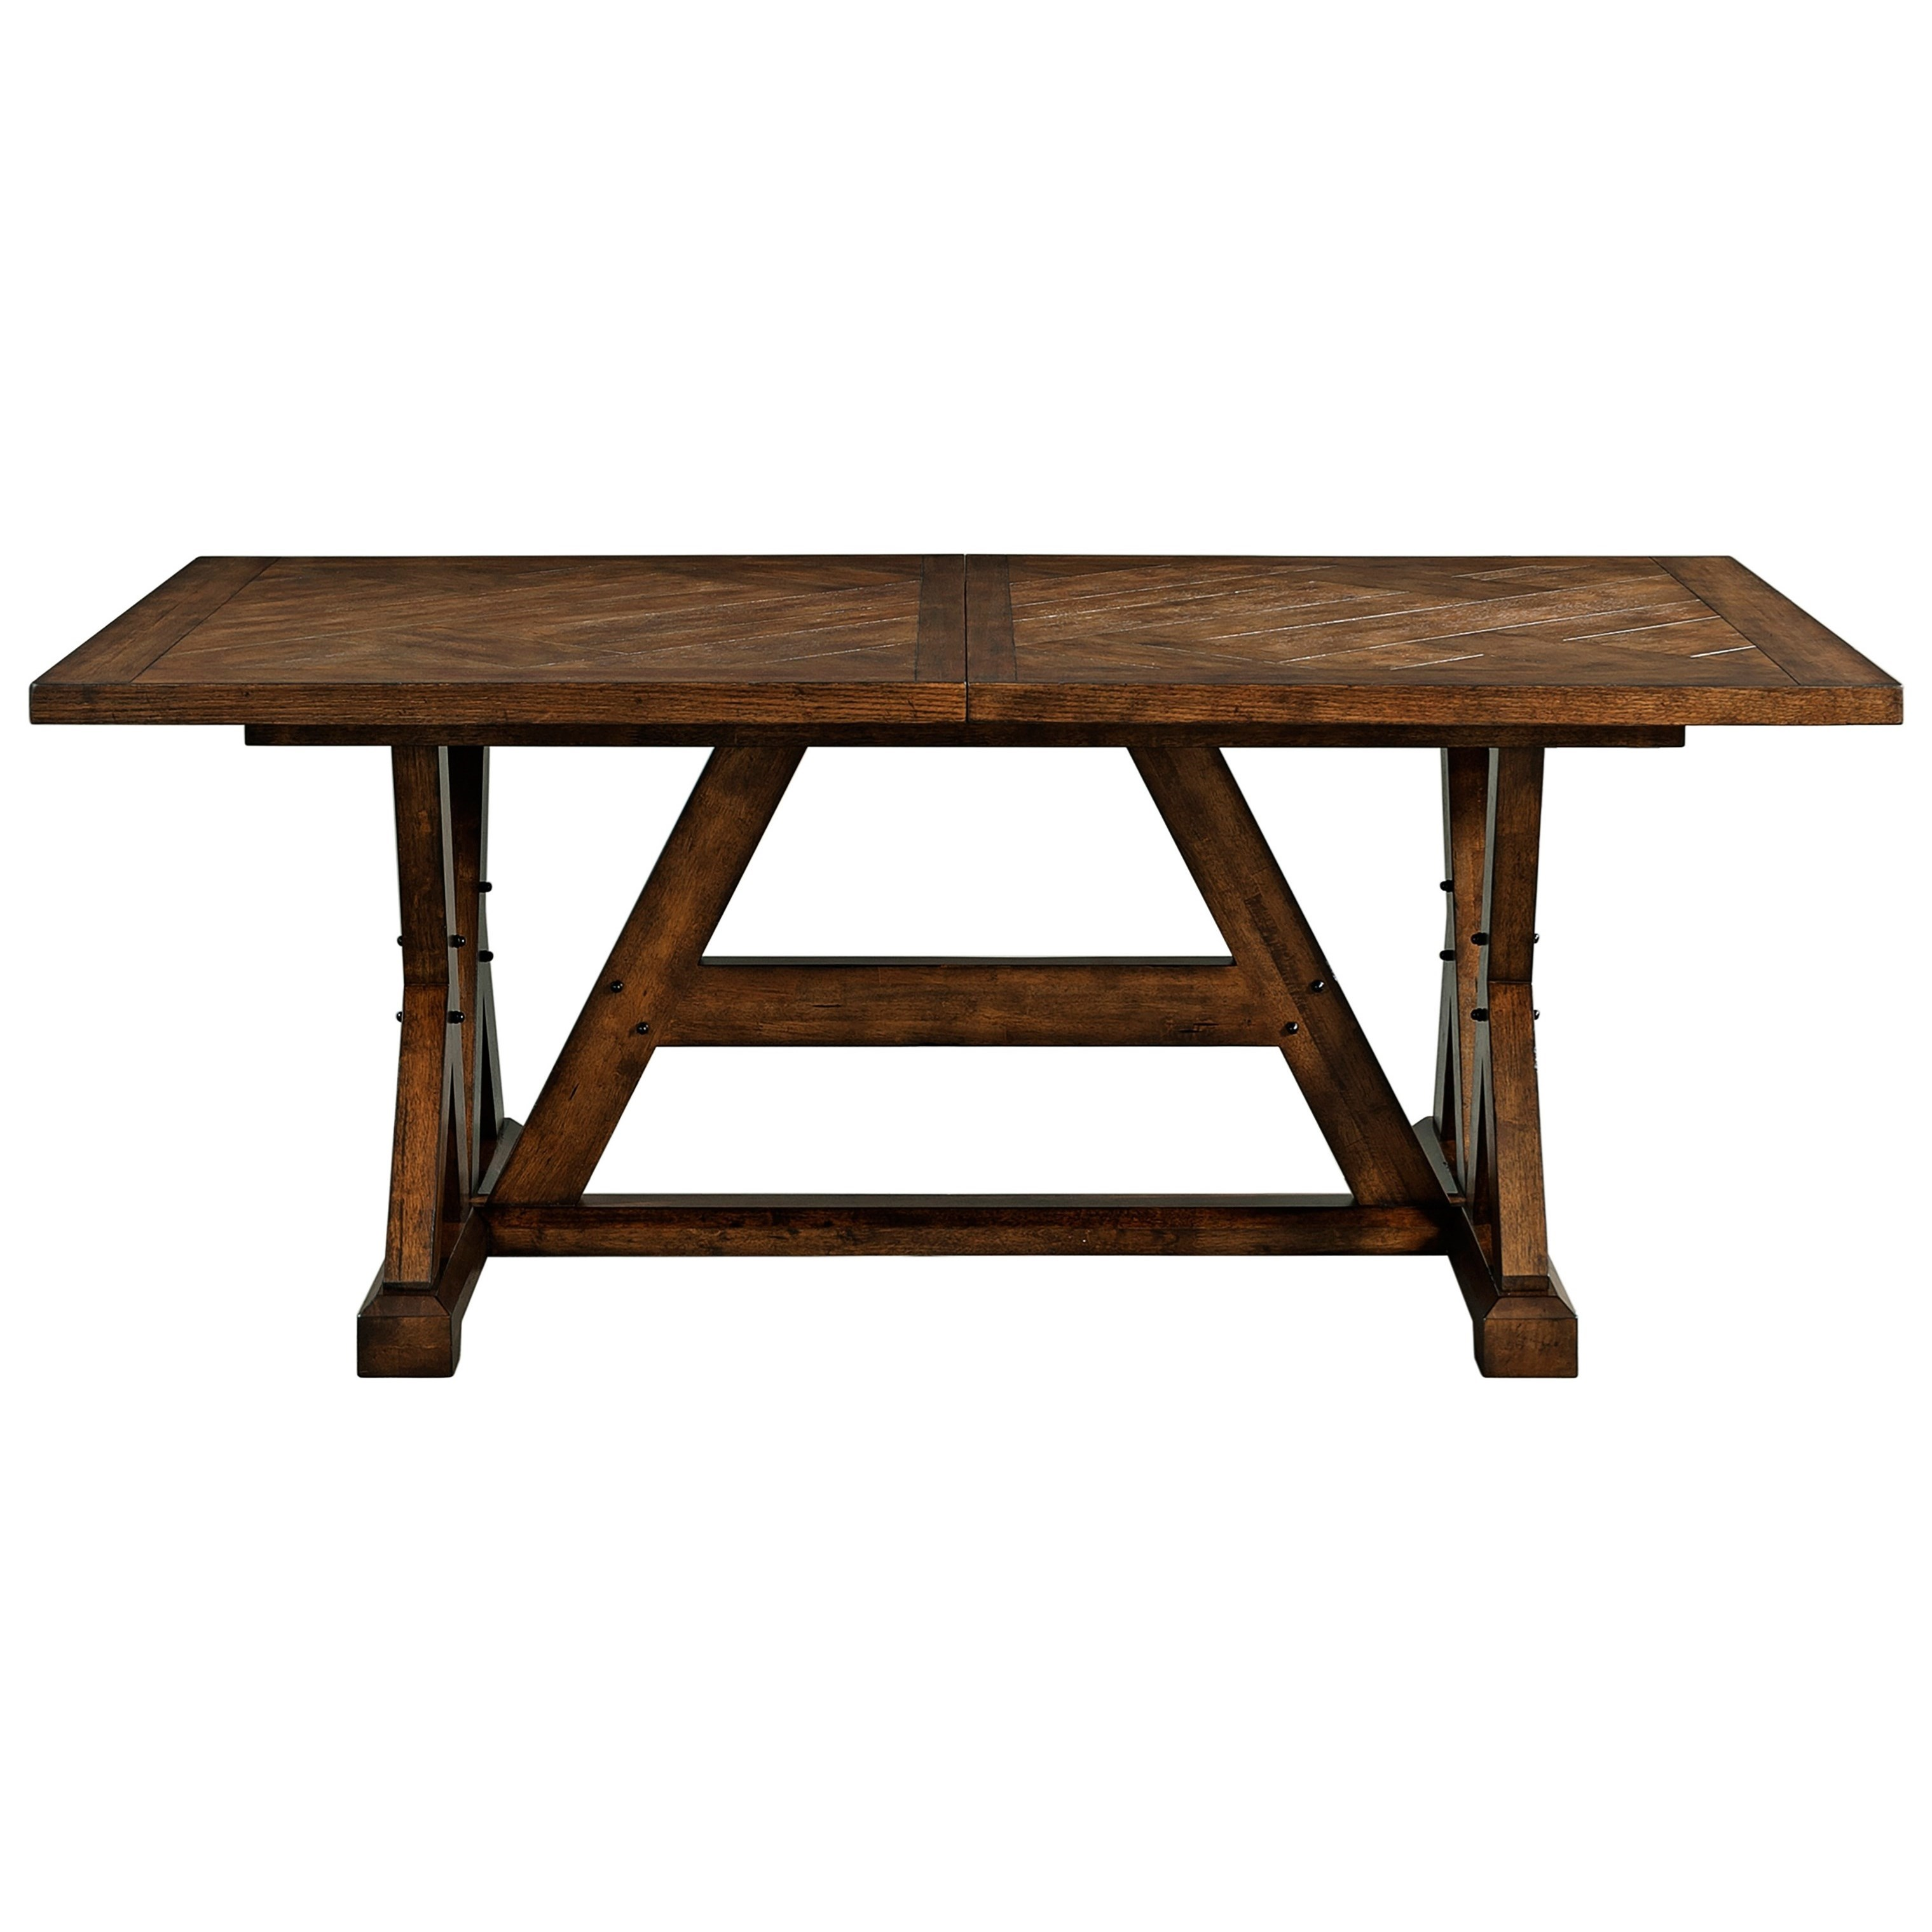 Broyhill Furniture Pieceworks Rectangular Dining Table  : products2Fbroyhillfurniture2Fcolor2Fpieceworks 11442682594546 541 b1 from www.knightfurniture.com size 3039 x 3039 jpeg 478kB